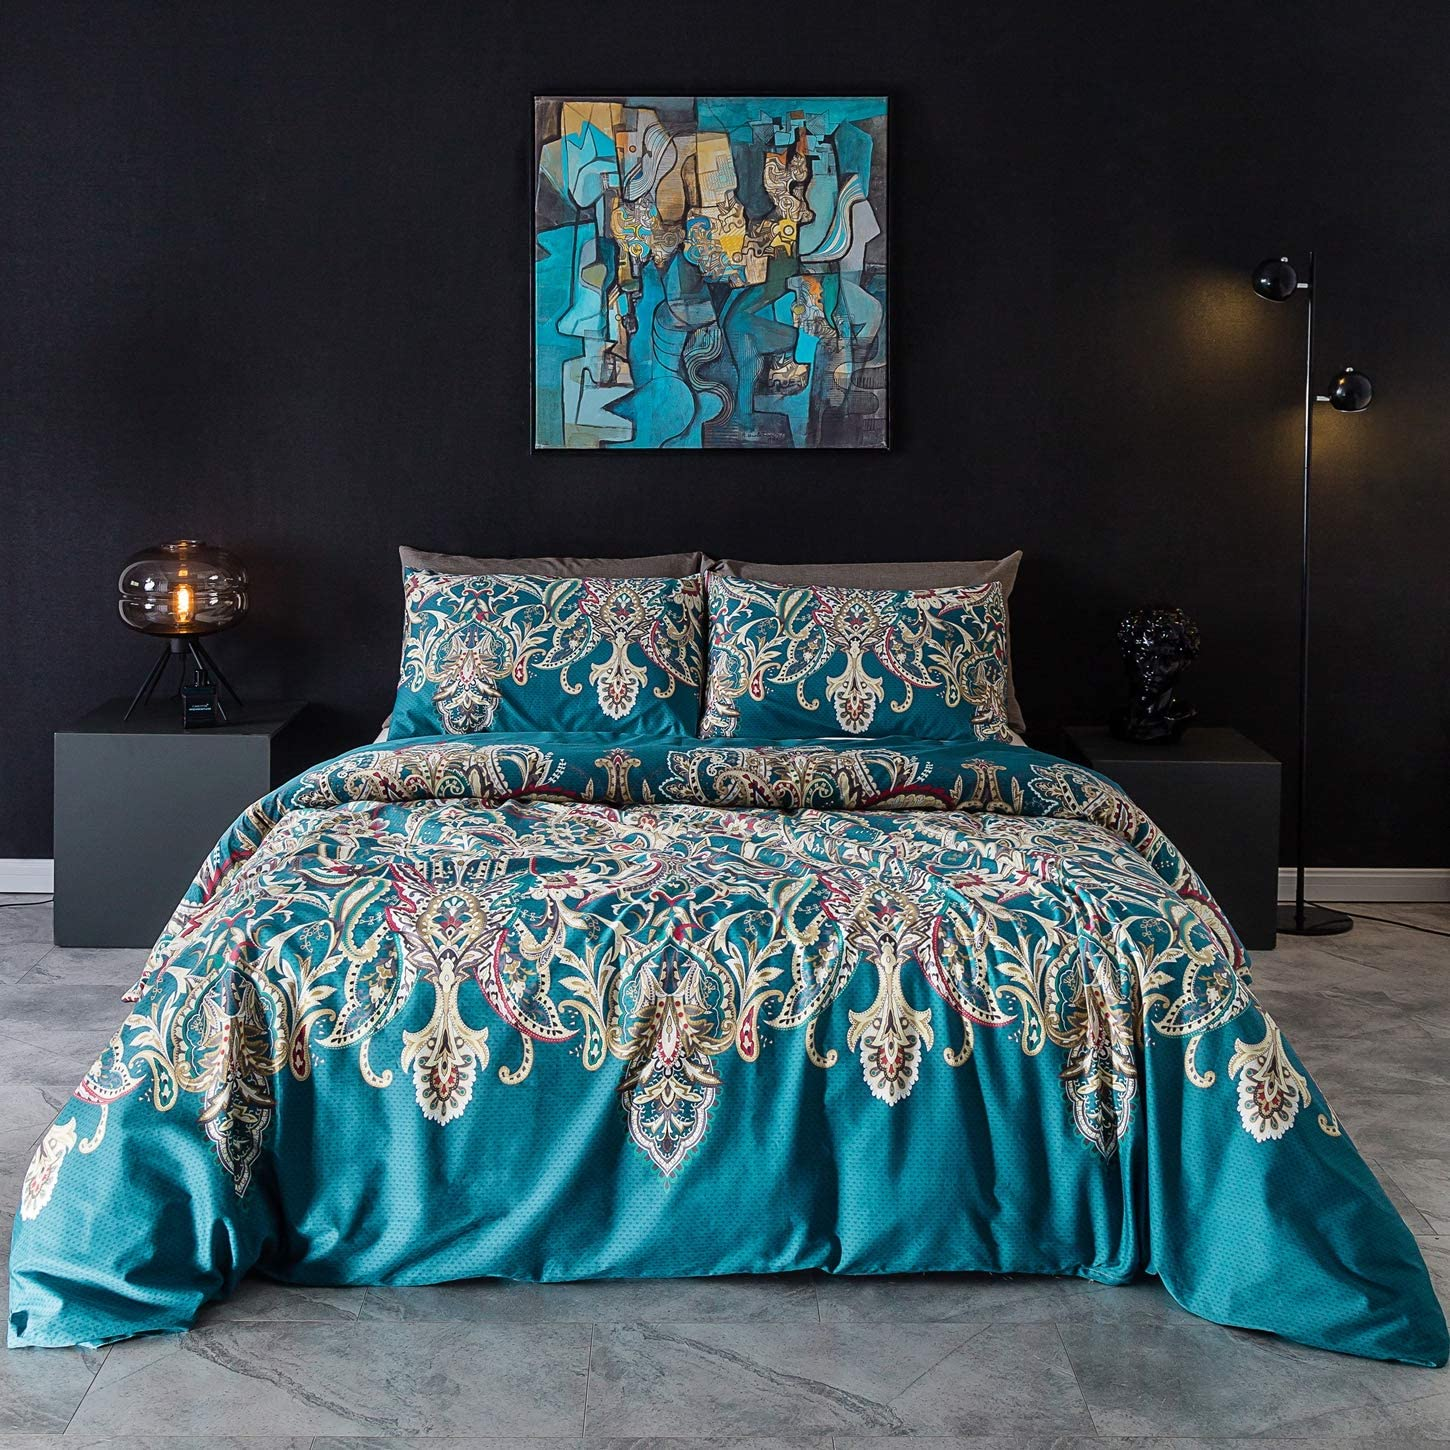 SUSYBAO 3 Piece Duvet Cover Set Queen Size 100% Egyptian Cotton Sateen Turquoise Bohemian Bedding Set 1 Paisley Duvet Cover with Zipper Ties 2 Pillowcases Hotel Quality Silky Soft Fade Resistant